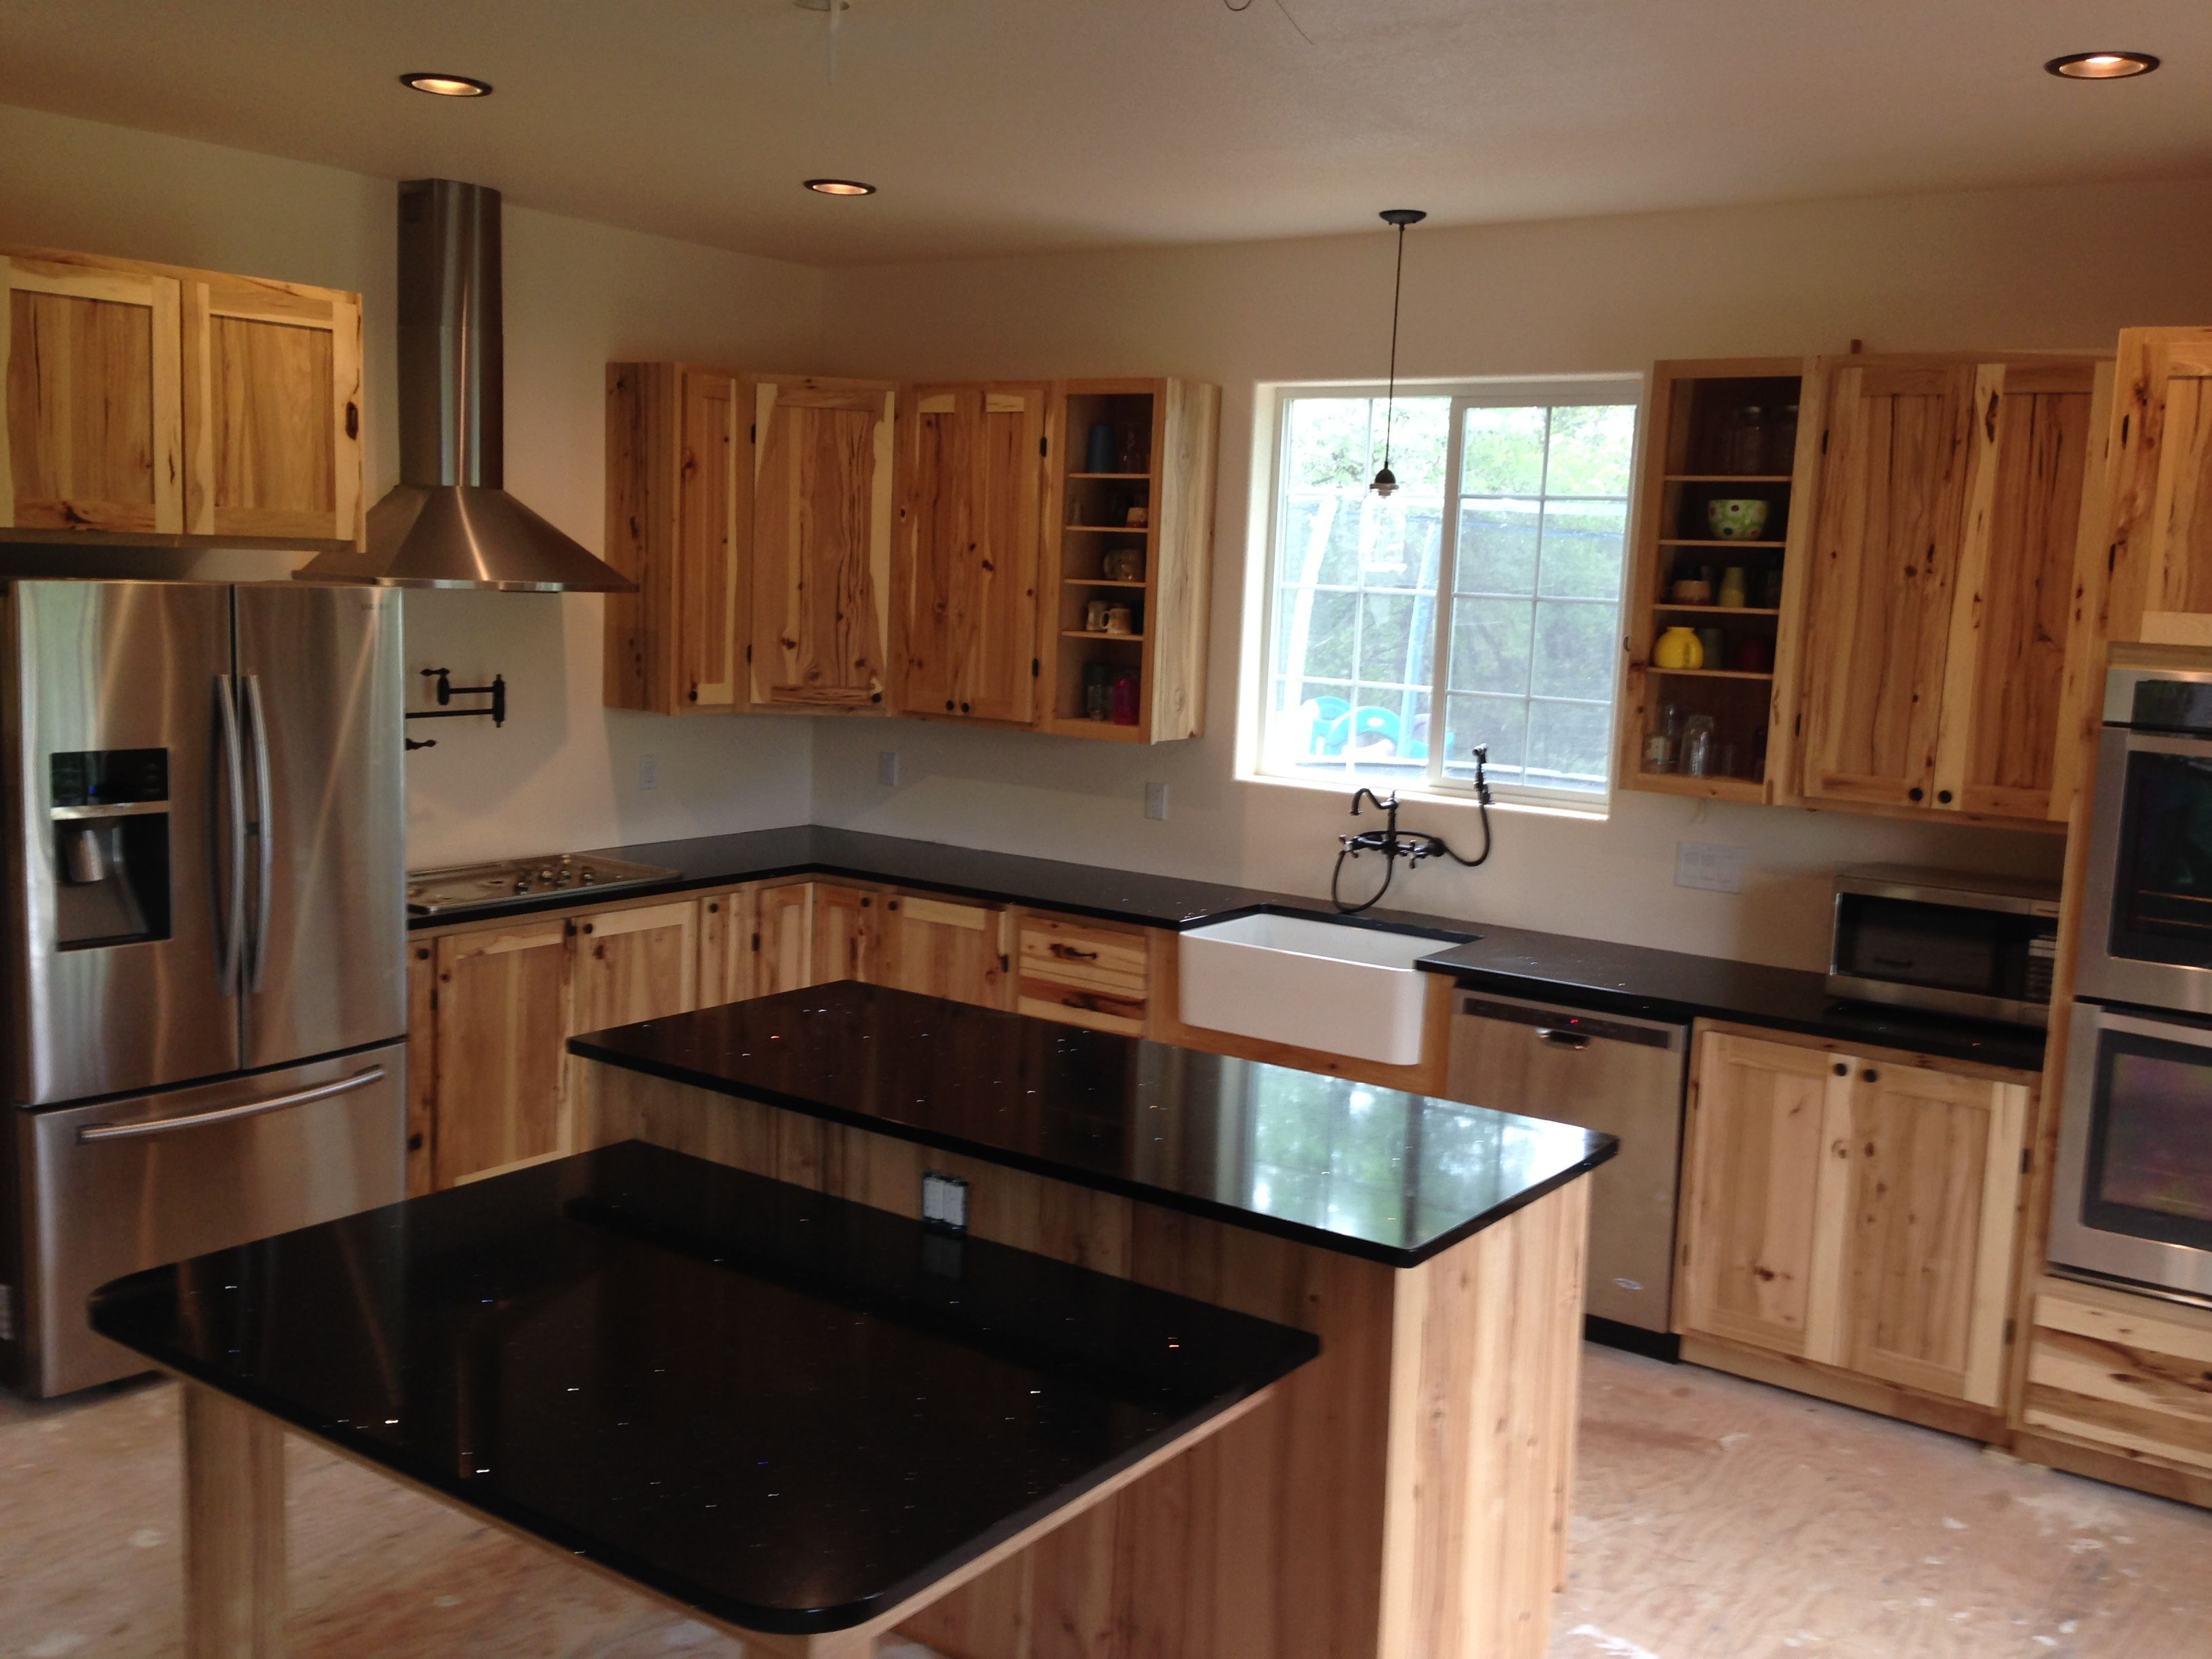 Rustic Cabinets Black Stainless Appliances And Farmhouse